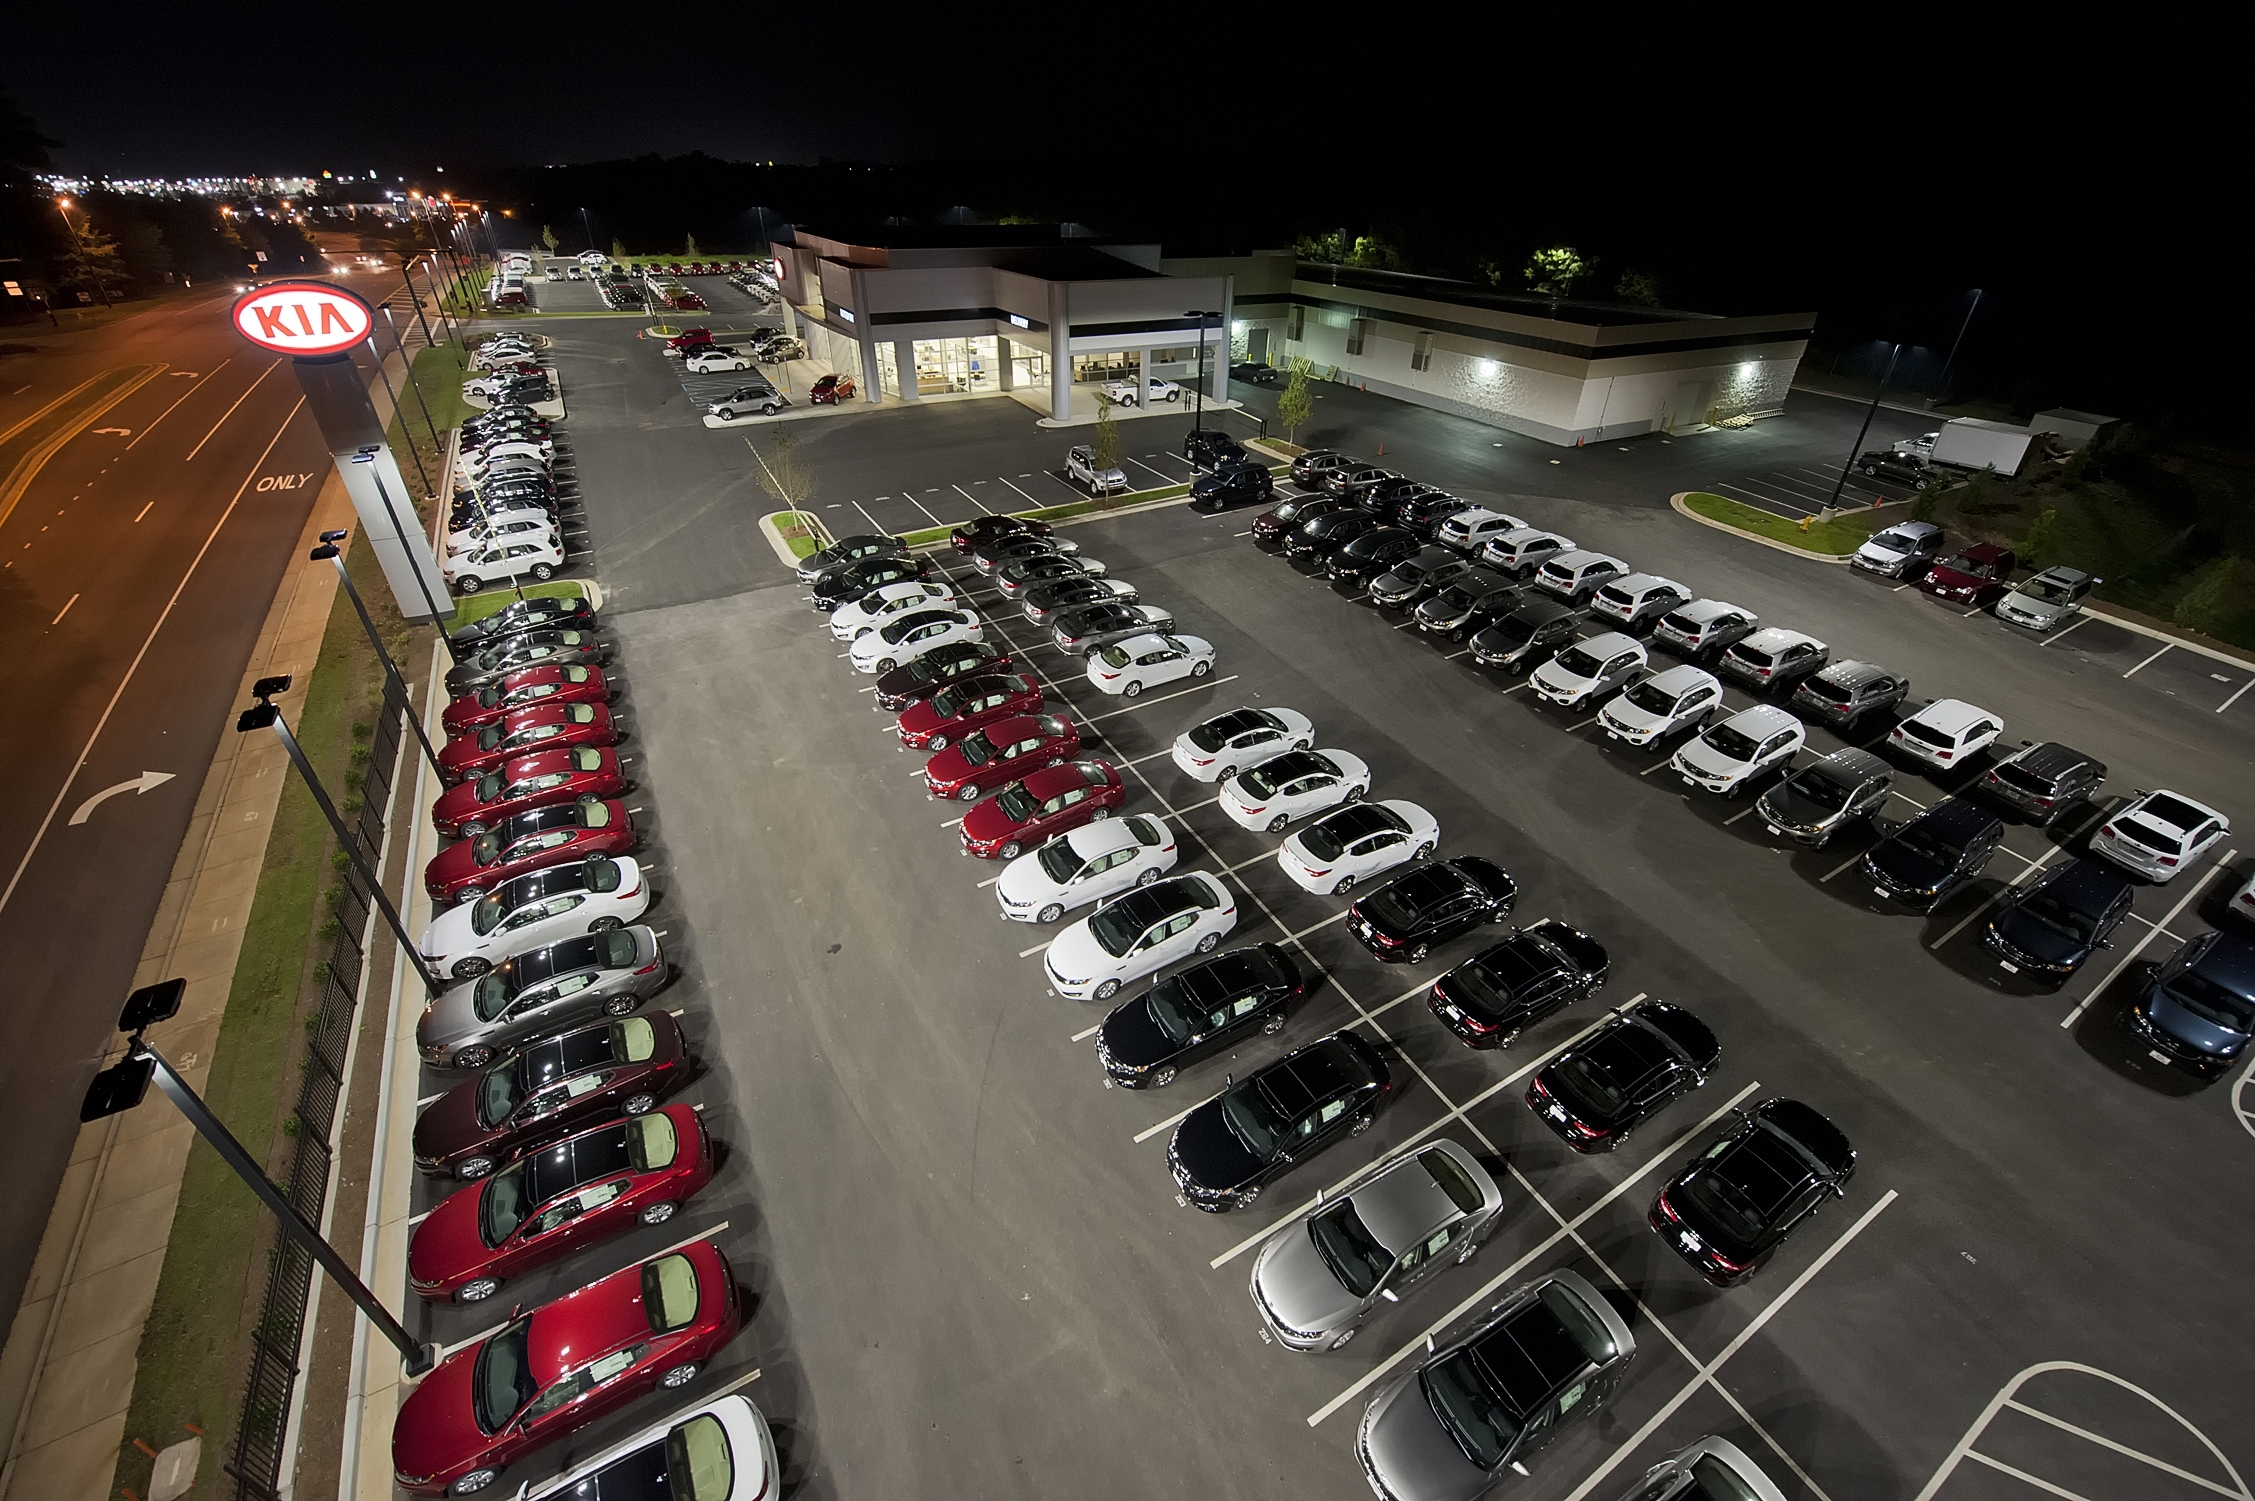 GE Outdoor LED Lighting Highlights Vehicle Inventory at KIA AutoSport Dealership | Business Wire & GE Outdoor LED Lighting Highlights Vehicle Inventory at KIA ... azcodes.com